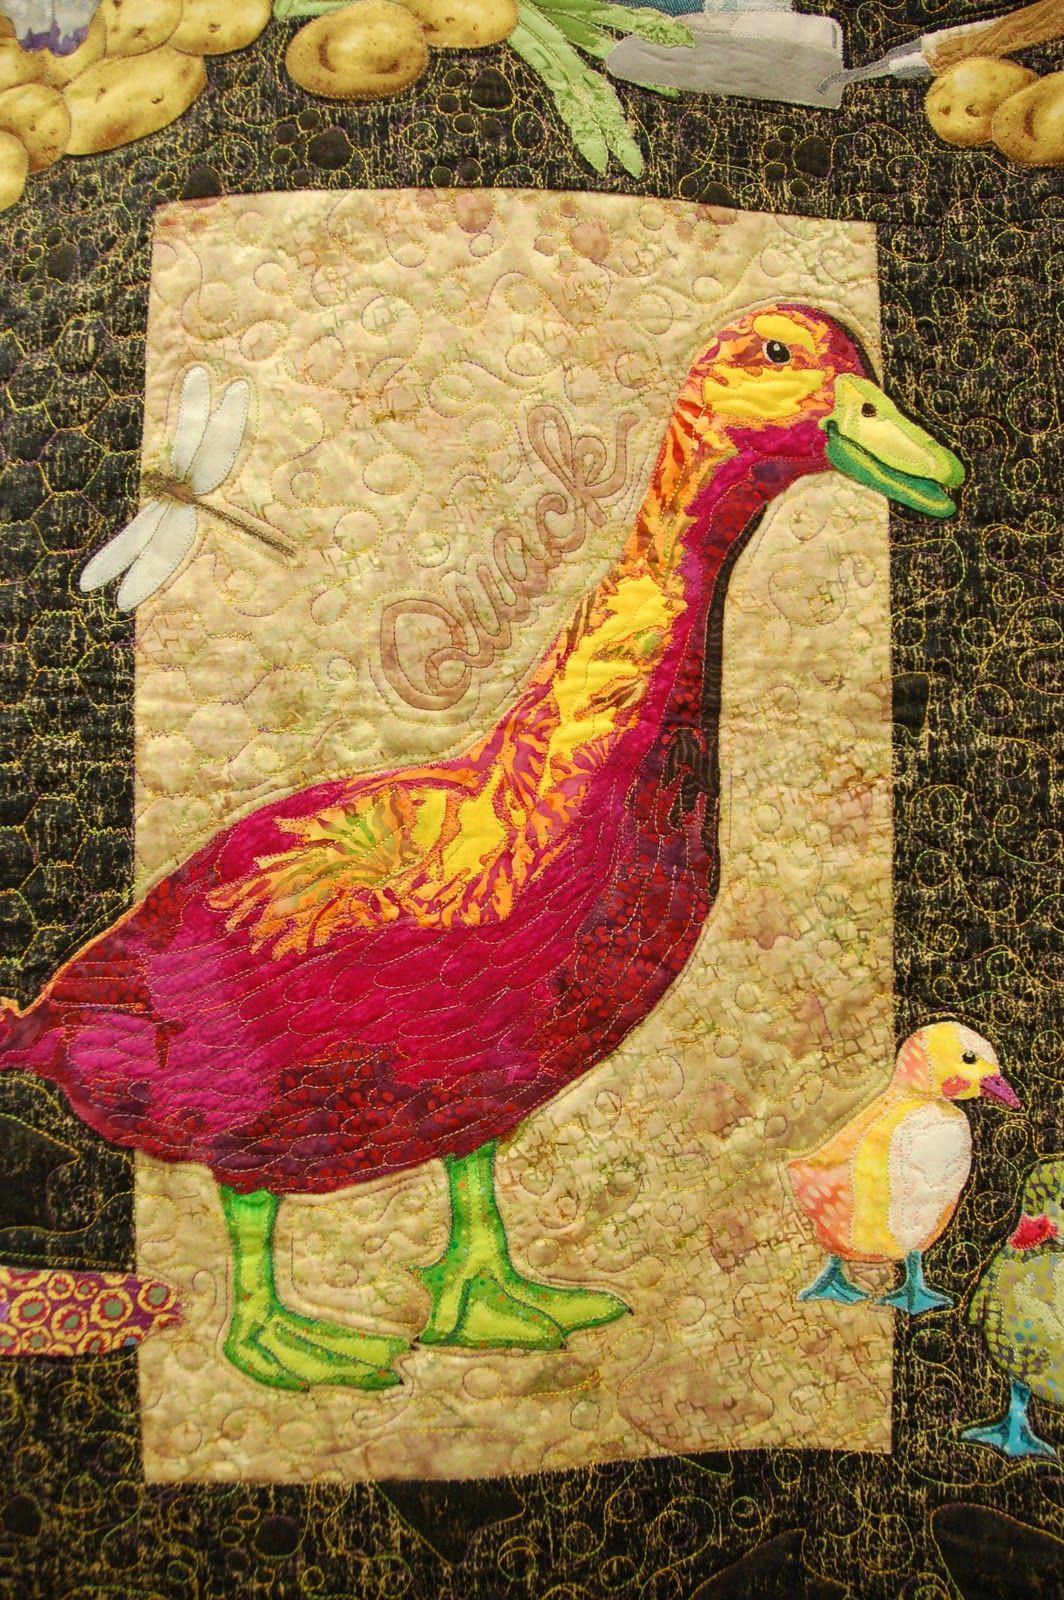 Pine Needle Quilt Shop: Hanging By a Thread Quilt Show   Mosaic ...